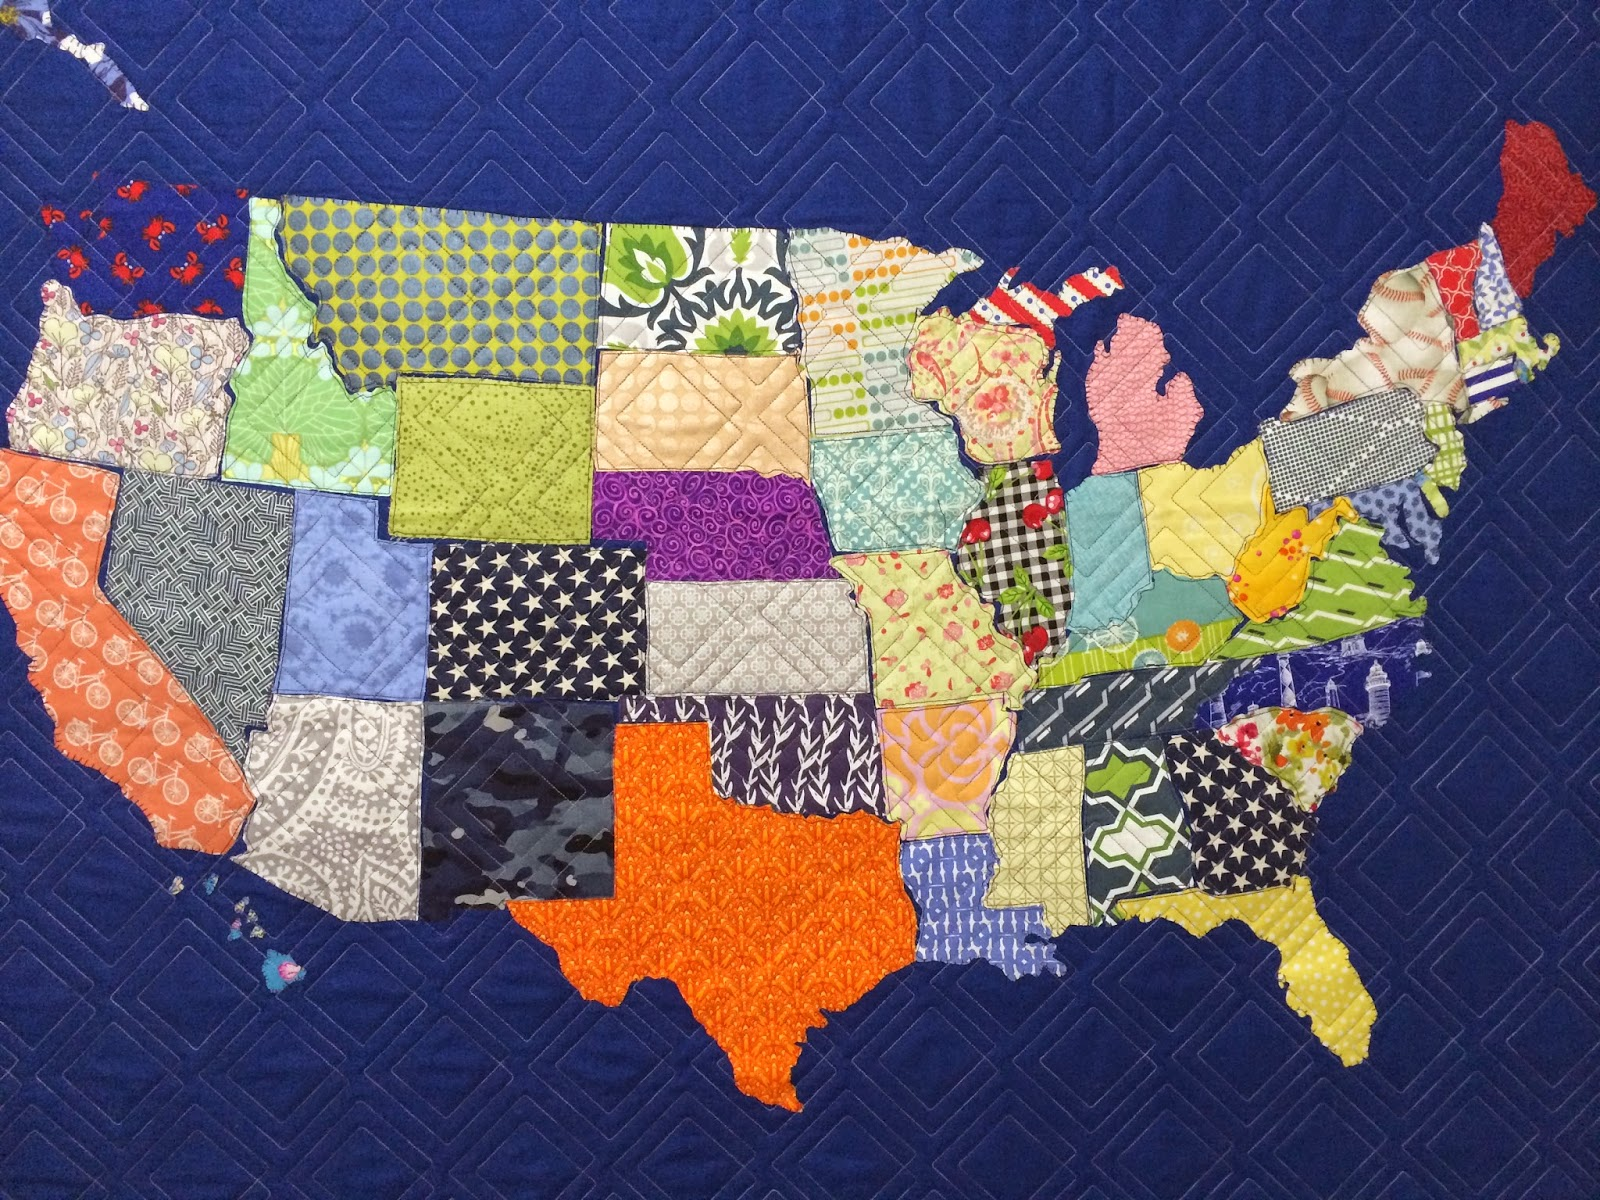 Karen Natale's Scrappy United State Map Quilt